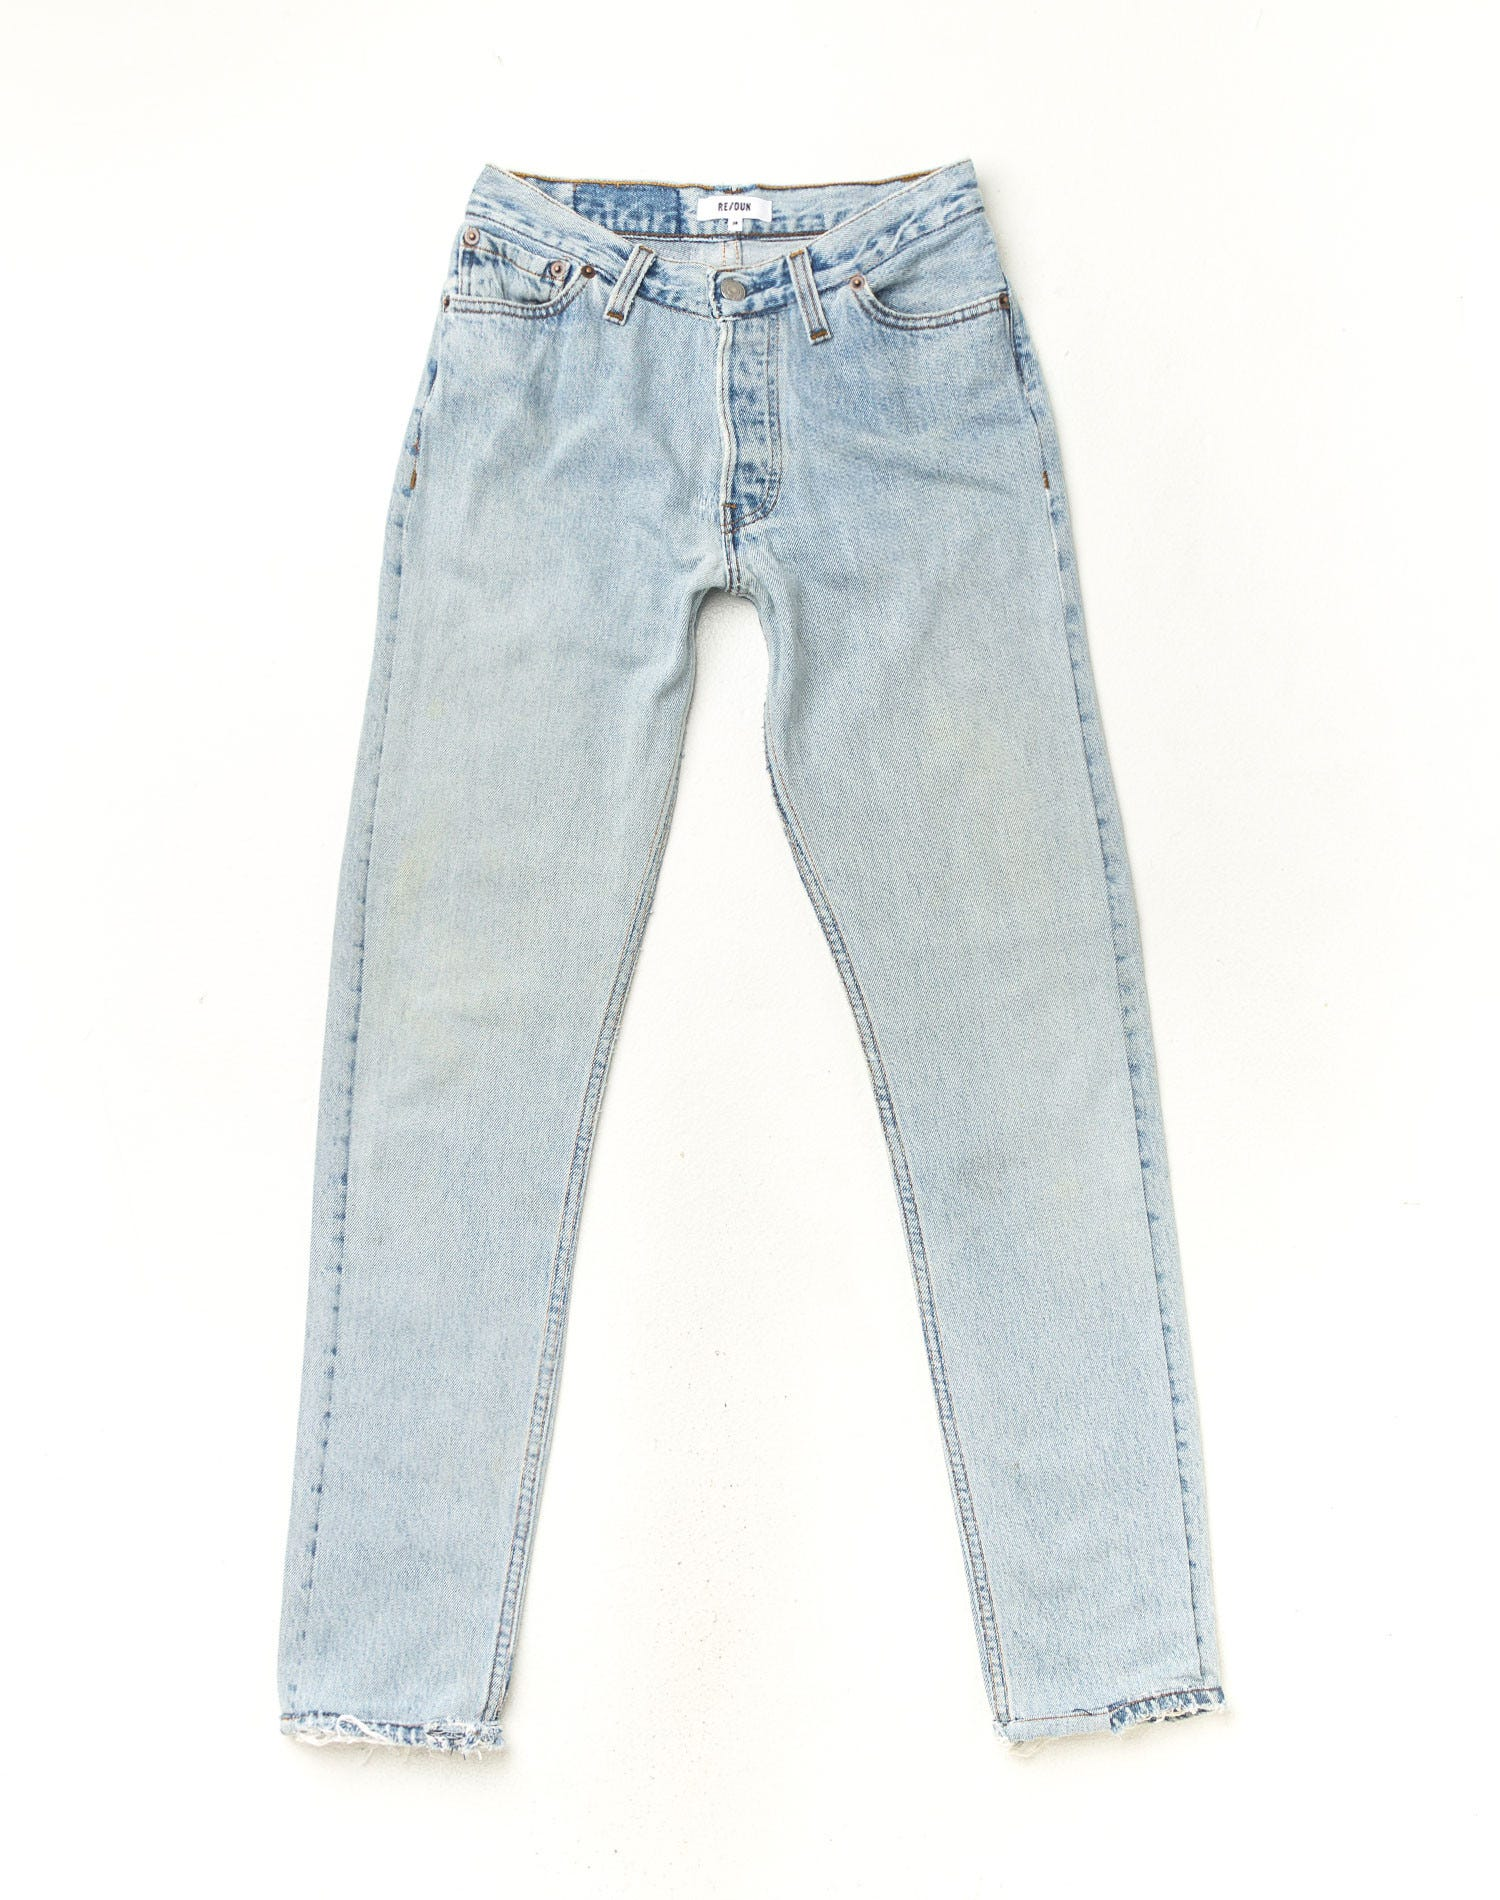 Learn About Denim Fashion Terms Vintage Skin Rip Off Stretch Soft Jeans